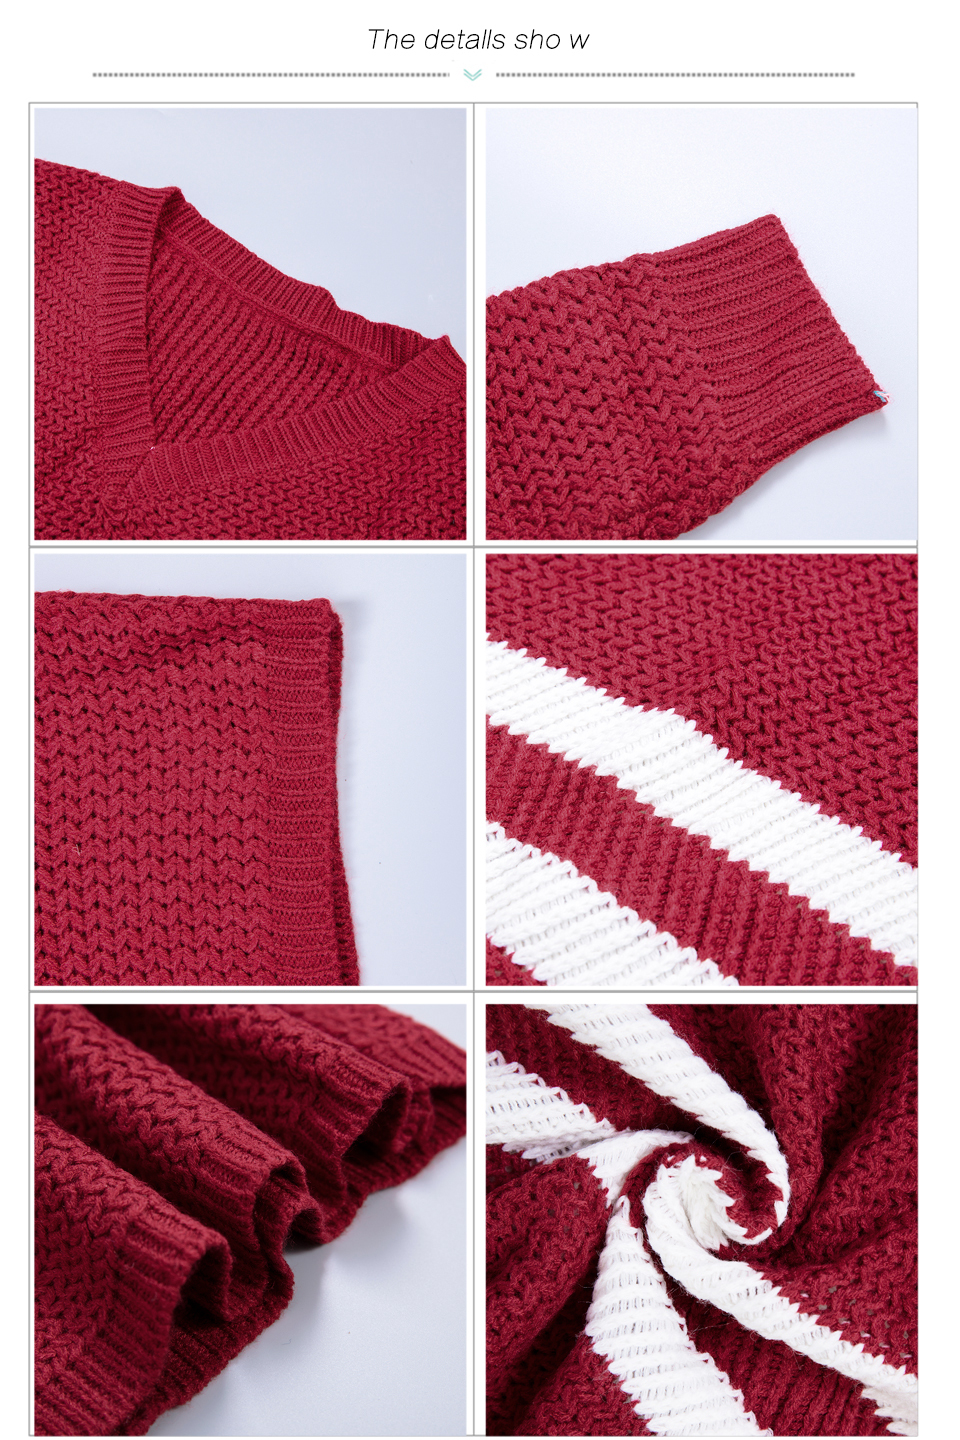 4 Colors!Spring Autumn Women Sweaters Pullovers V-neck Crop Tops Striped Long Sleeve Knitted Sweater Roupas Femininas T4N510 7